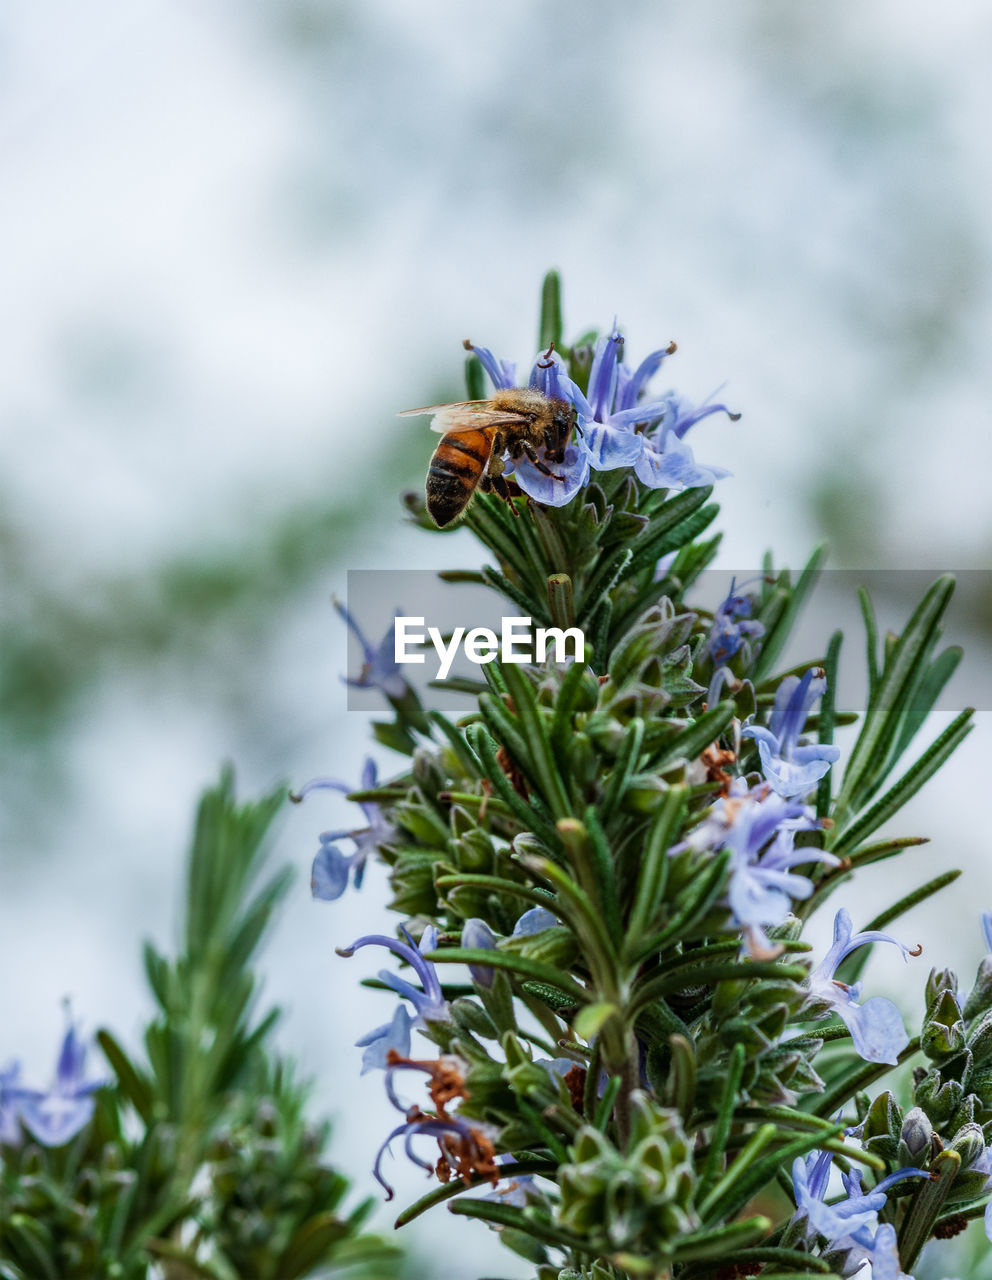 plant, flowering plant, flower, invertebrate, growth, beauty in nature, insect, vulnerability, fragility, animal themes, animal wildlife, animal, close-up, one animal, nature, animals in the wild, no people, flower head, freshness, bee, purple, pollination, animal wing, butterfly - insect